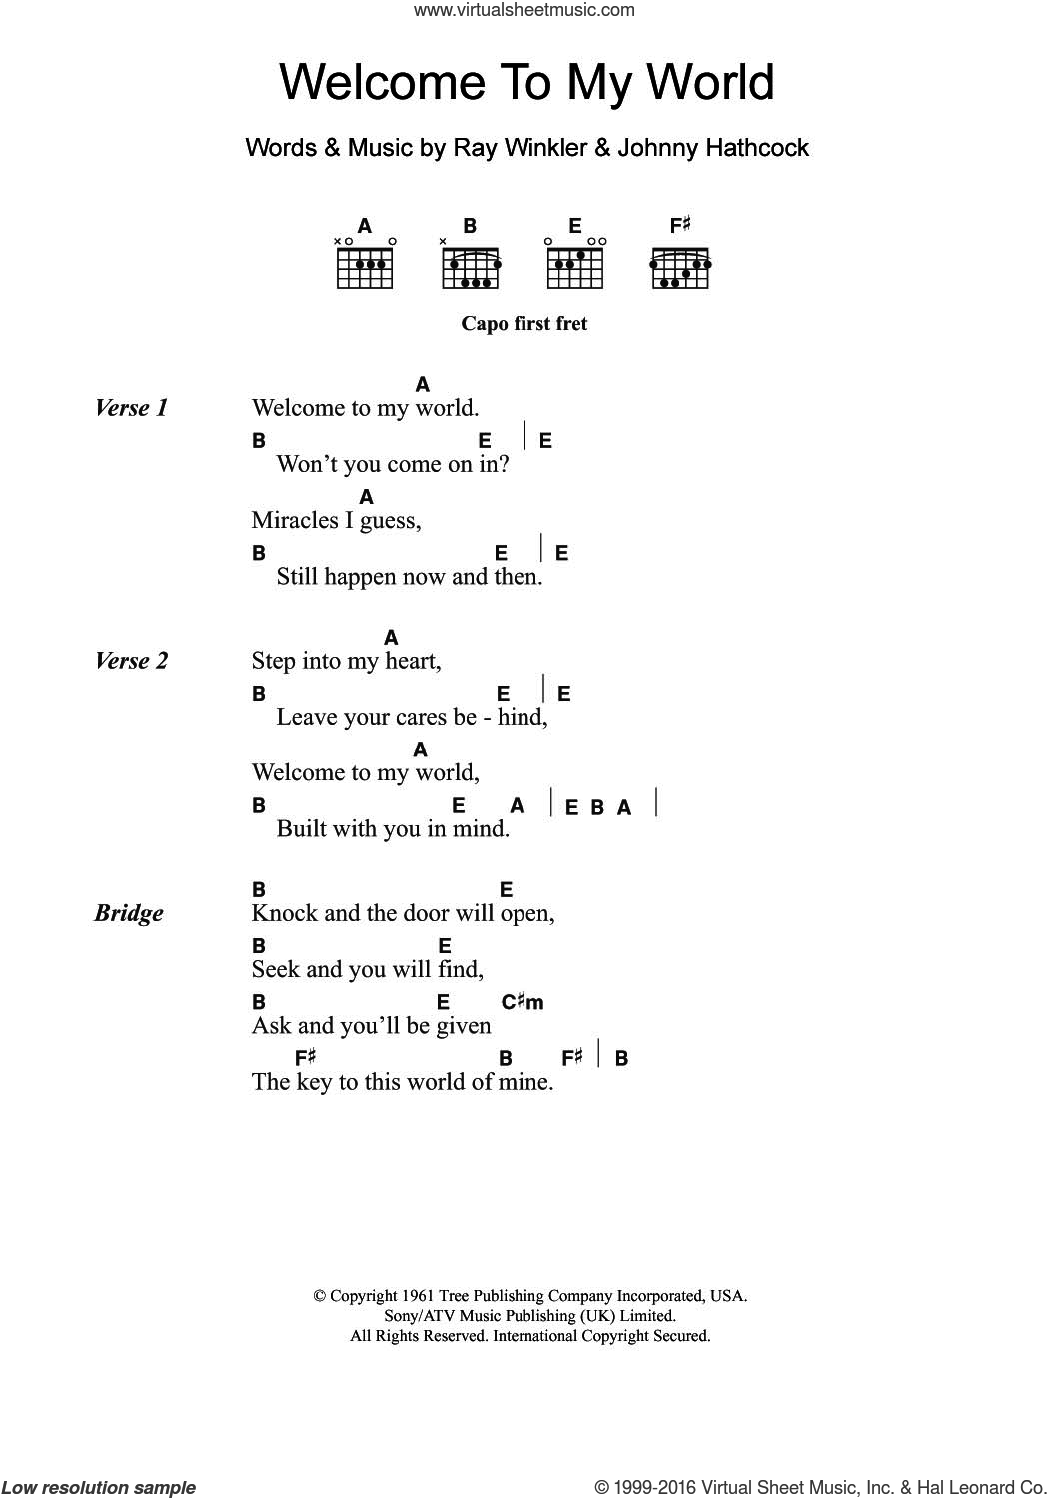 Welcome To My World sheet music for guitar (chords) by Jim Reeves, Johnny Hathcock and Ray Winkler, intermediate